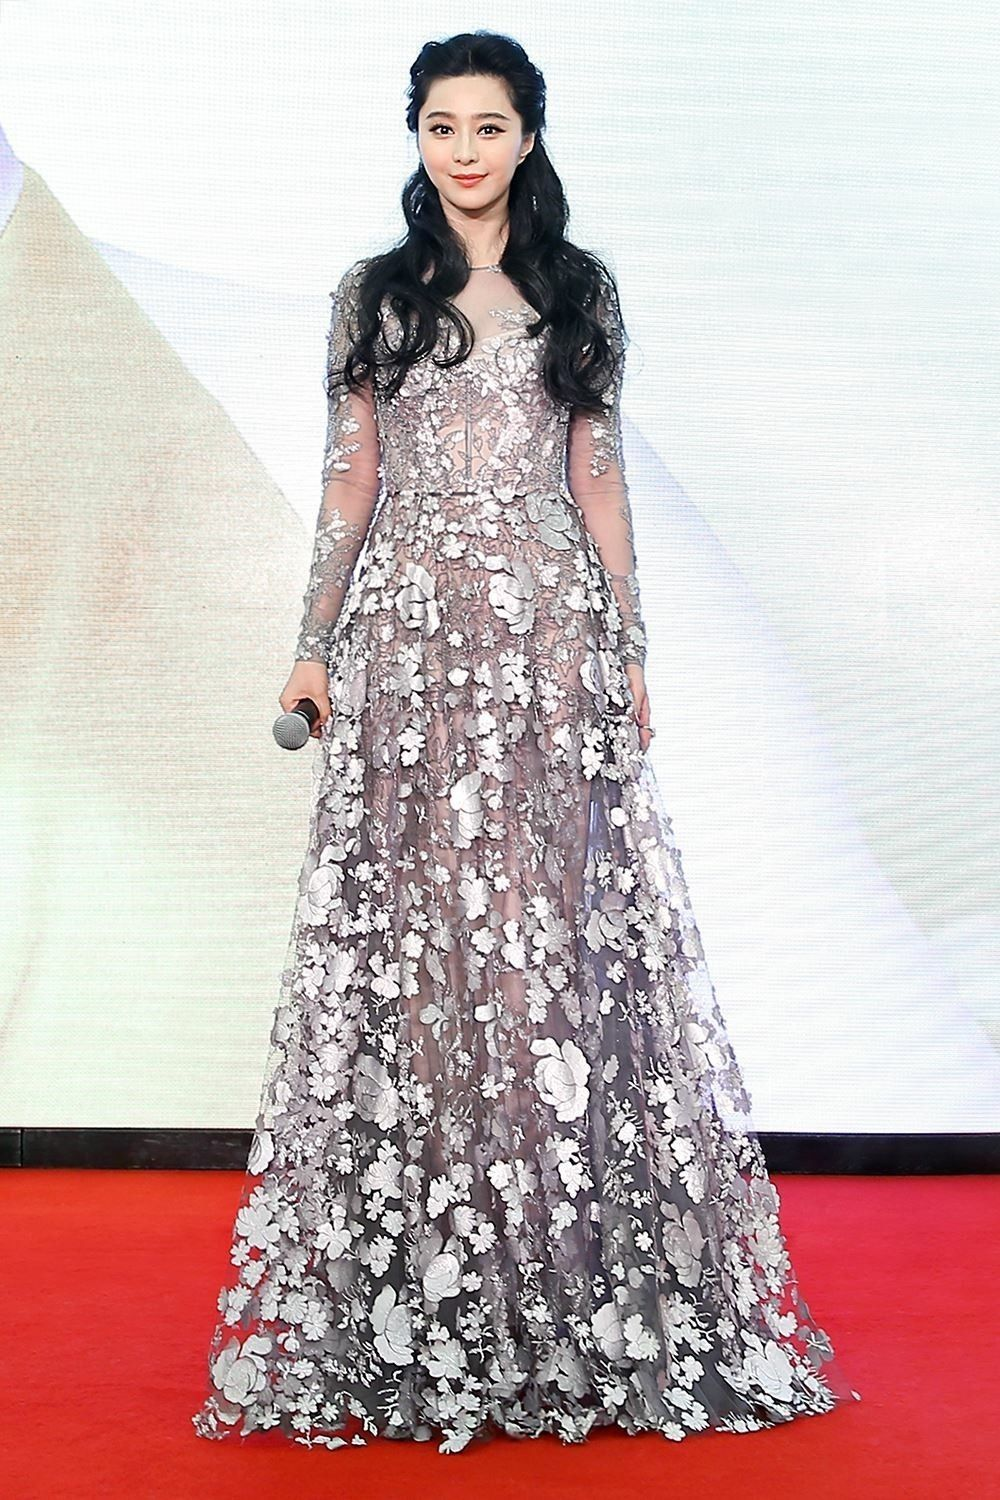 Caribbean wedding dress  Pin by Luna on F A S H I O N  Pinterest  Fan bingbing Fan